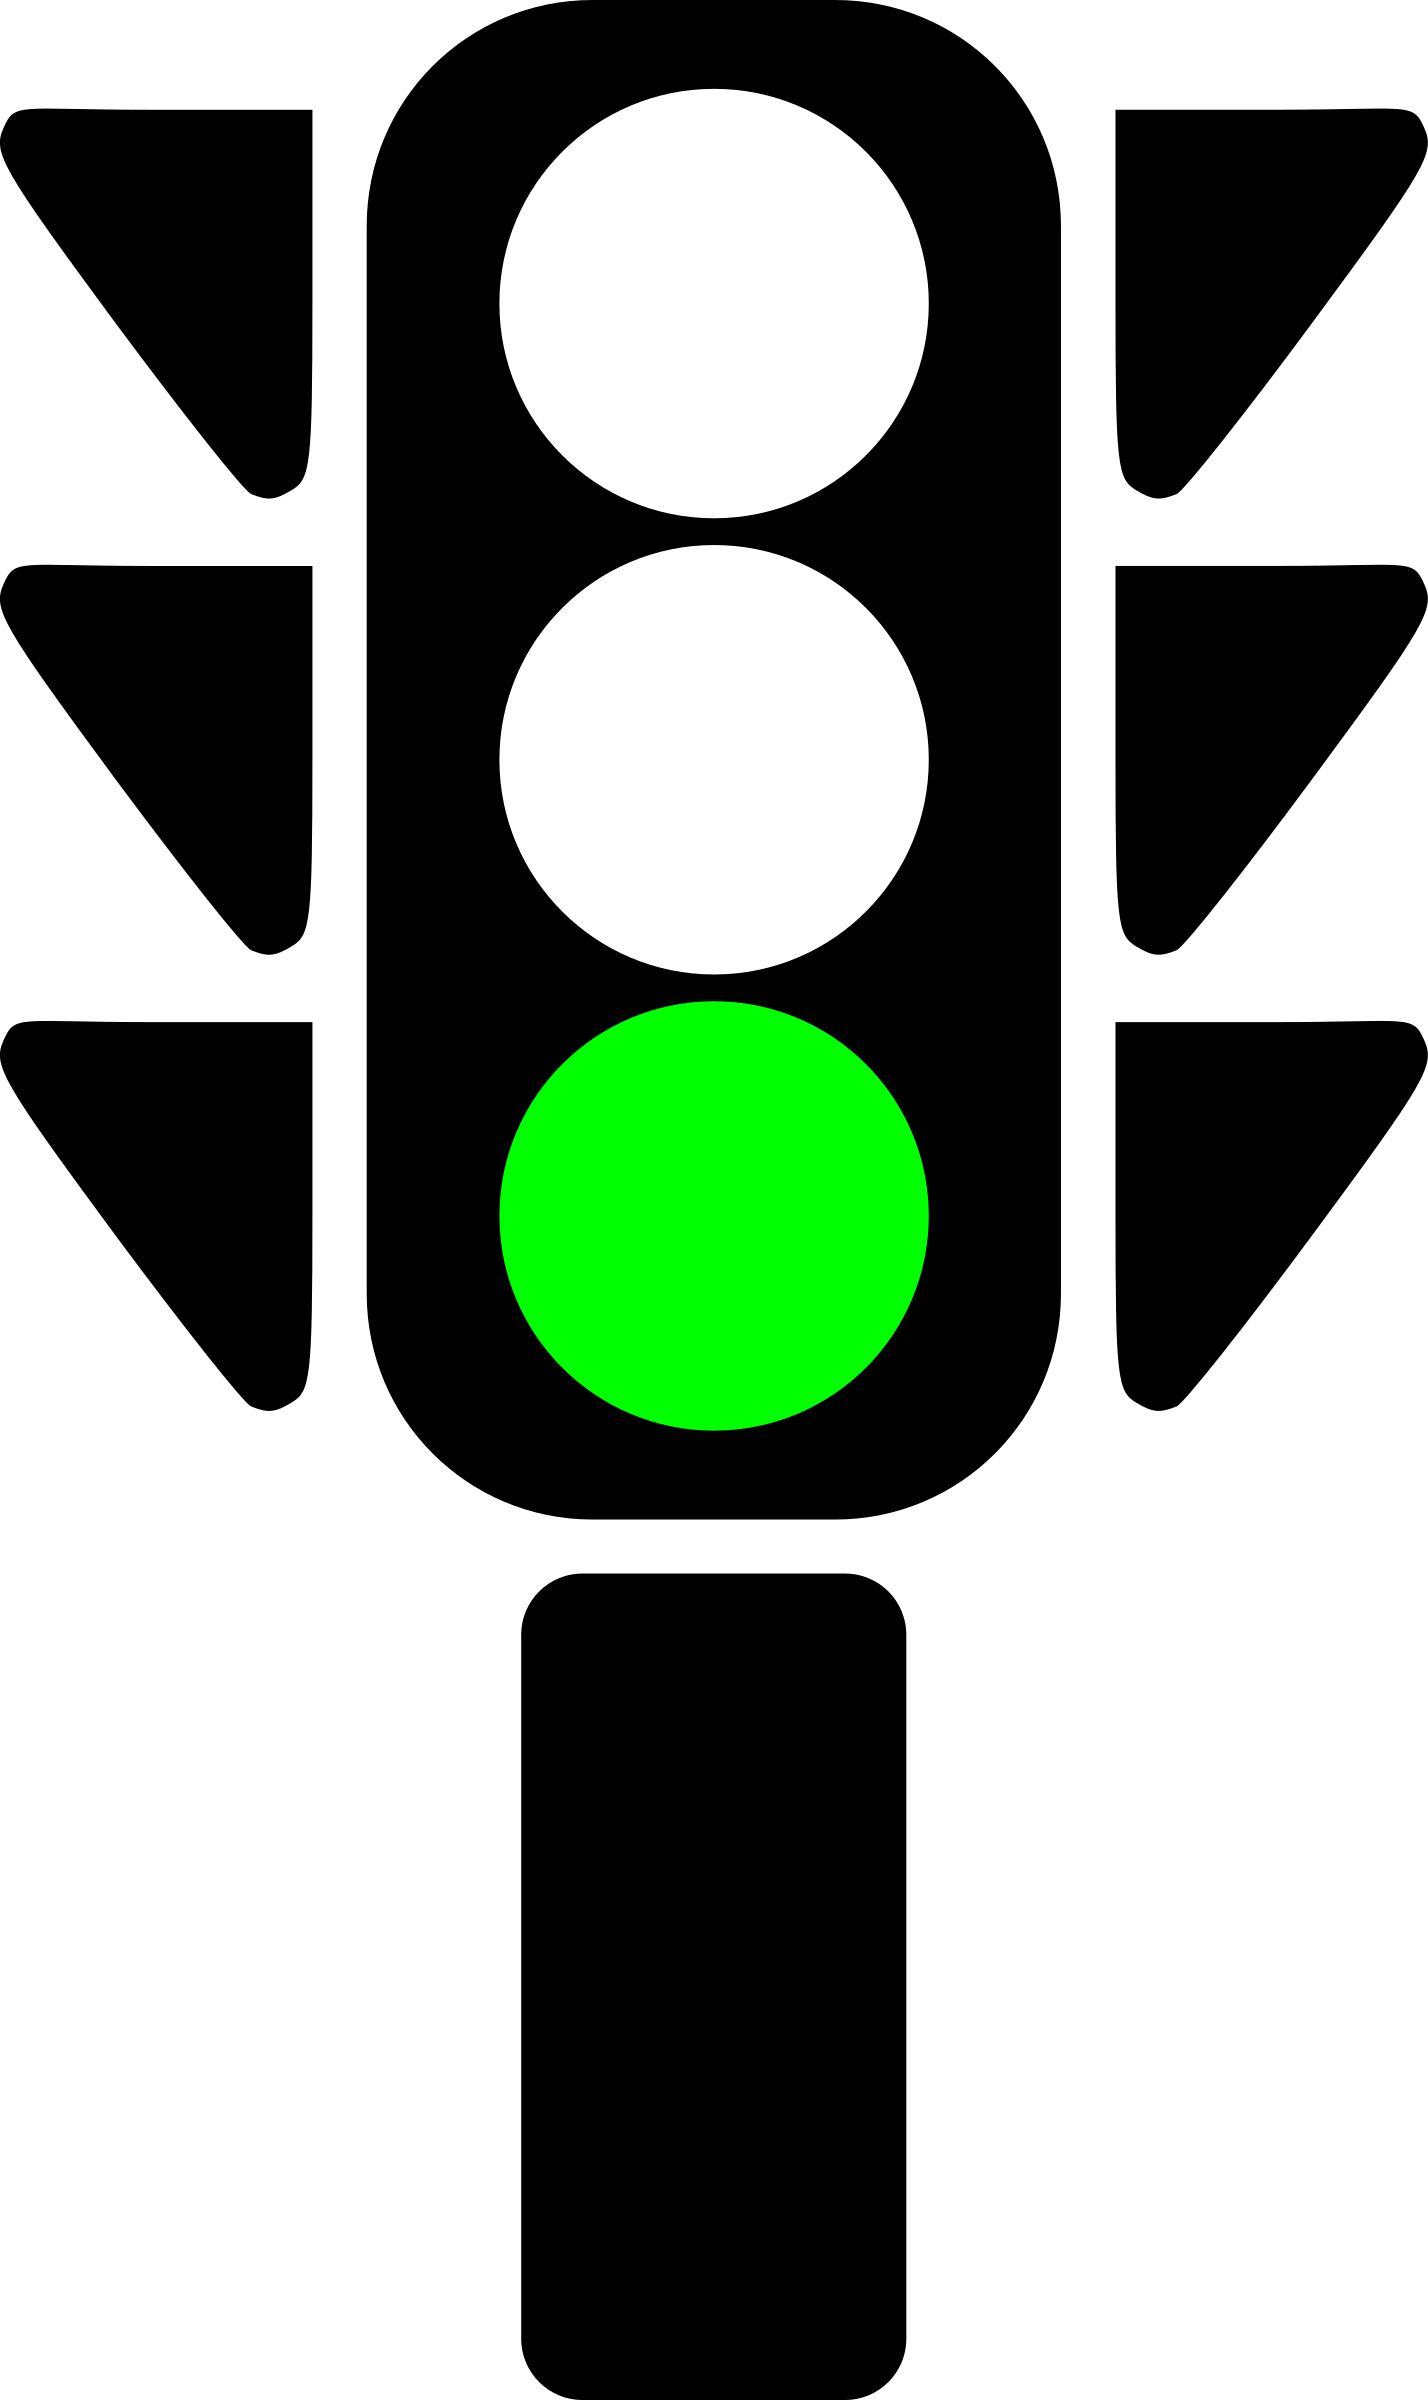 jpg library download Yes clipart green light. Traffic semaphore big image